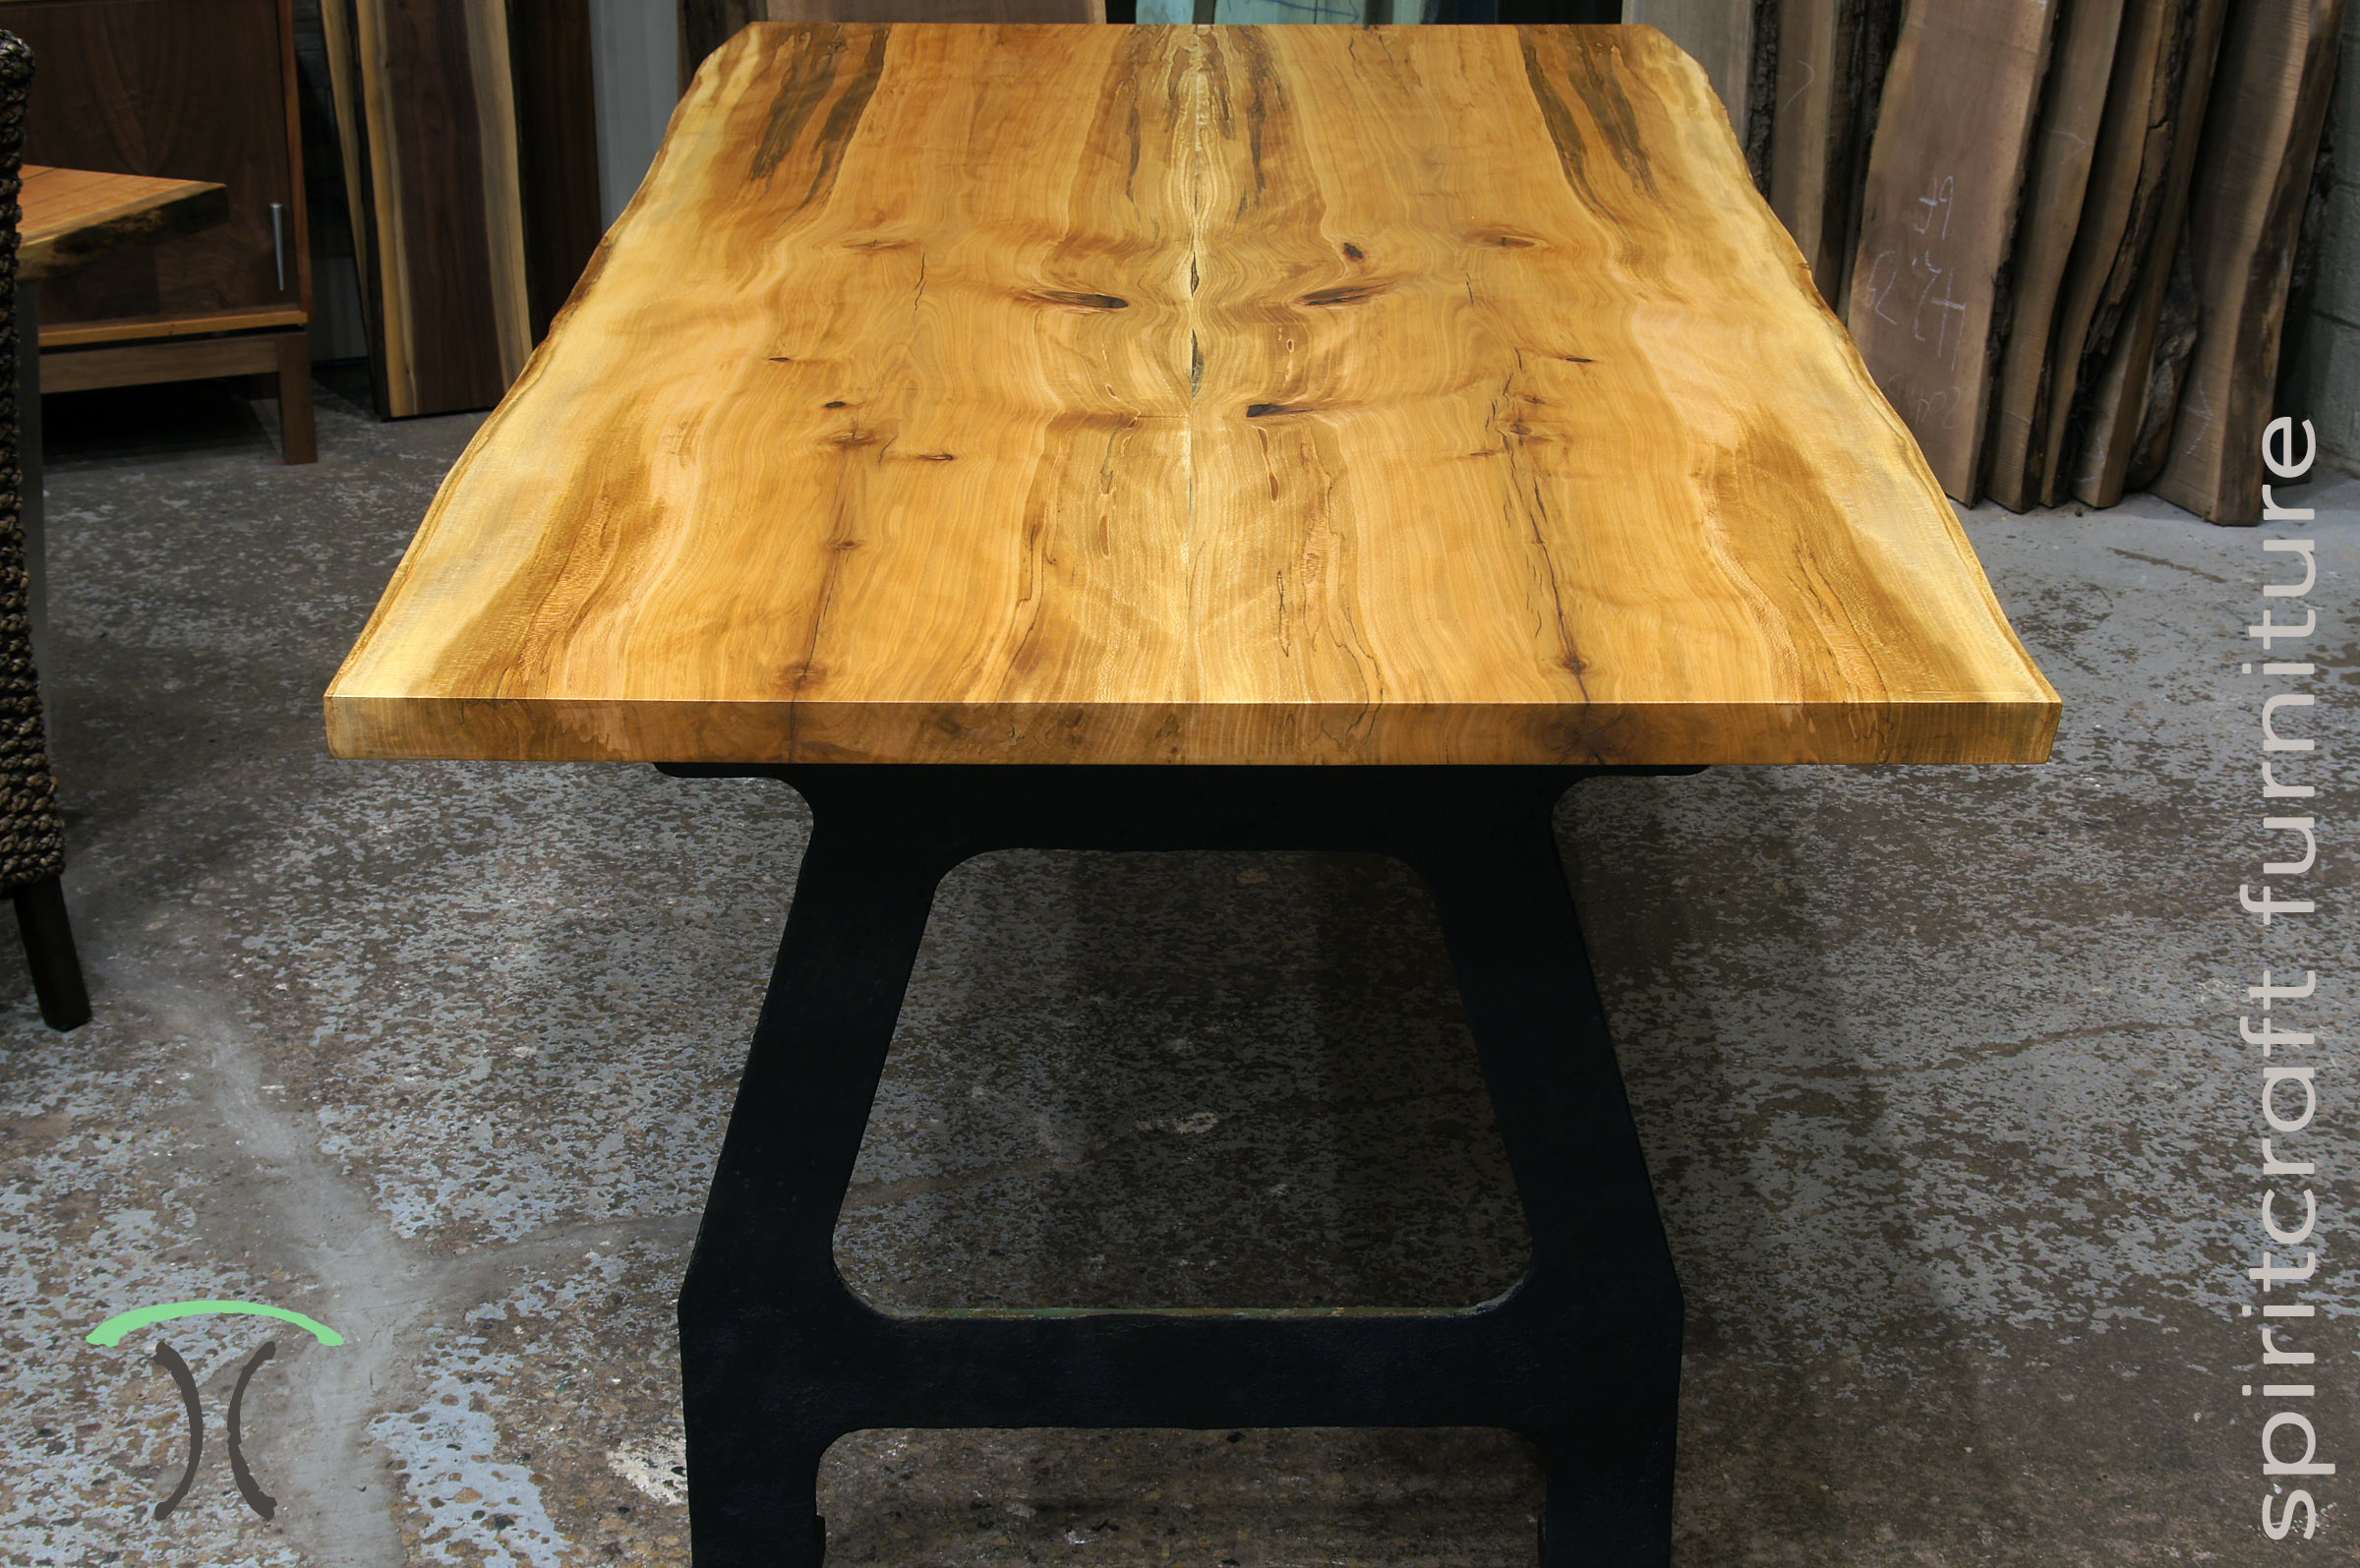 Live edge Dining or Conference Table in spalted Sycamore on industrial cast iron legs at our living edge furniture store in Chicago area, East Dundee, Illinois